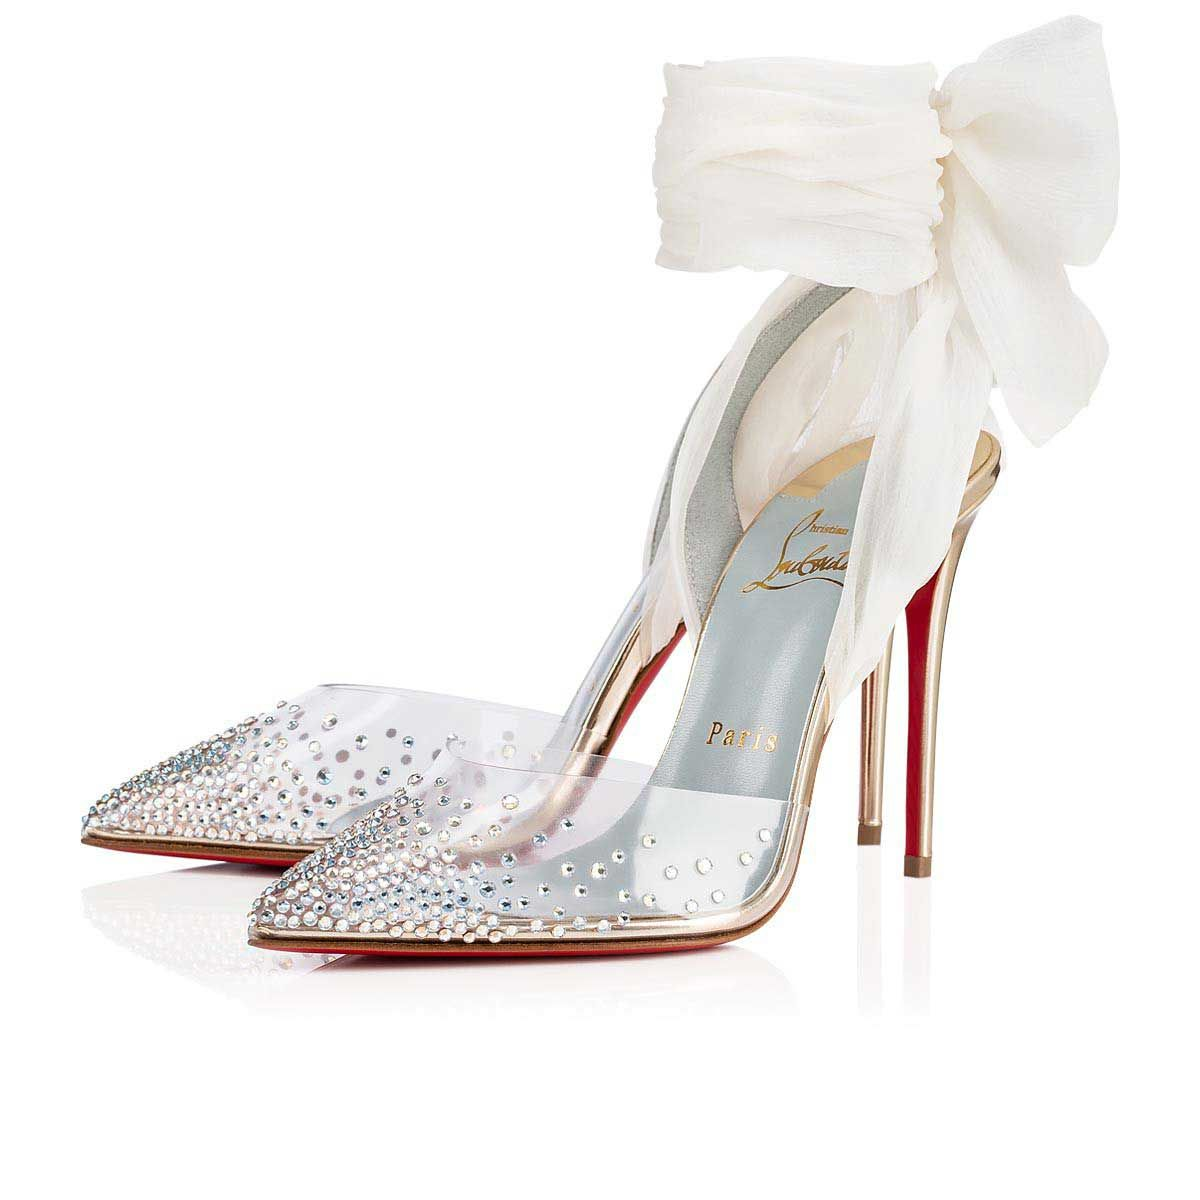 christian louboutin in paris address